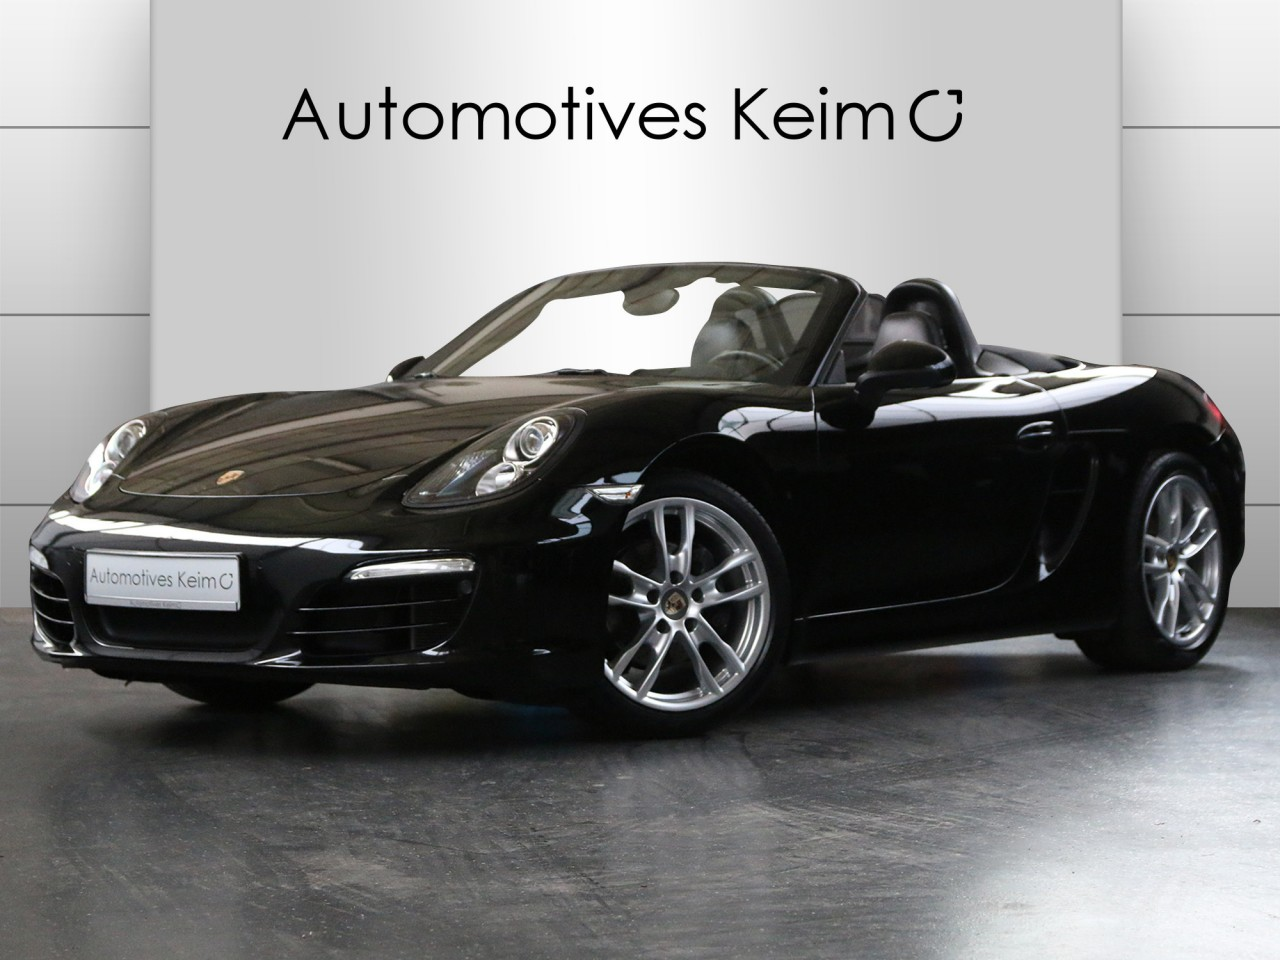 PORSCHE_BOXSTER_981_Automotives_Keim_GmbH_63500_Seligenstadt_www.automotives-keim.de_oliver_keim_000001